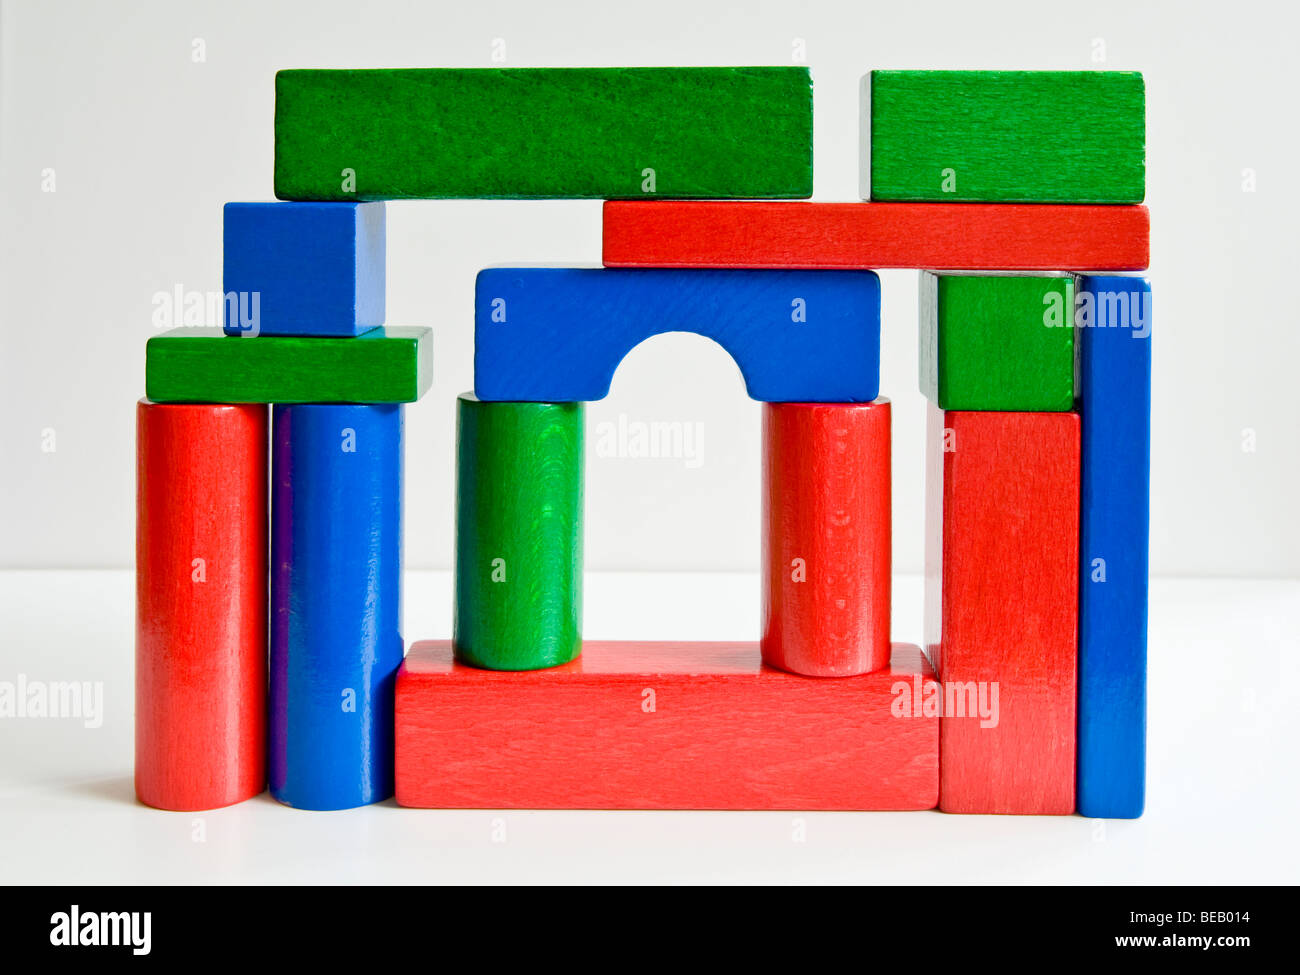 A collection of colourful building bricks arranged as a random structure. - Stock Image